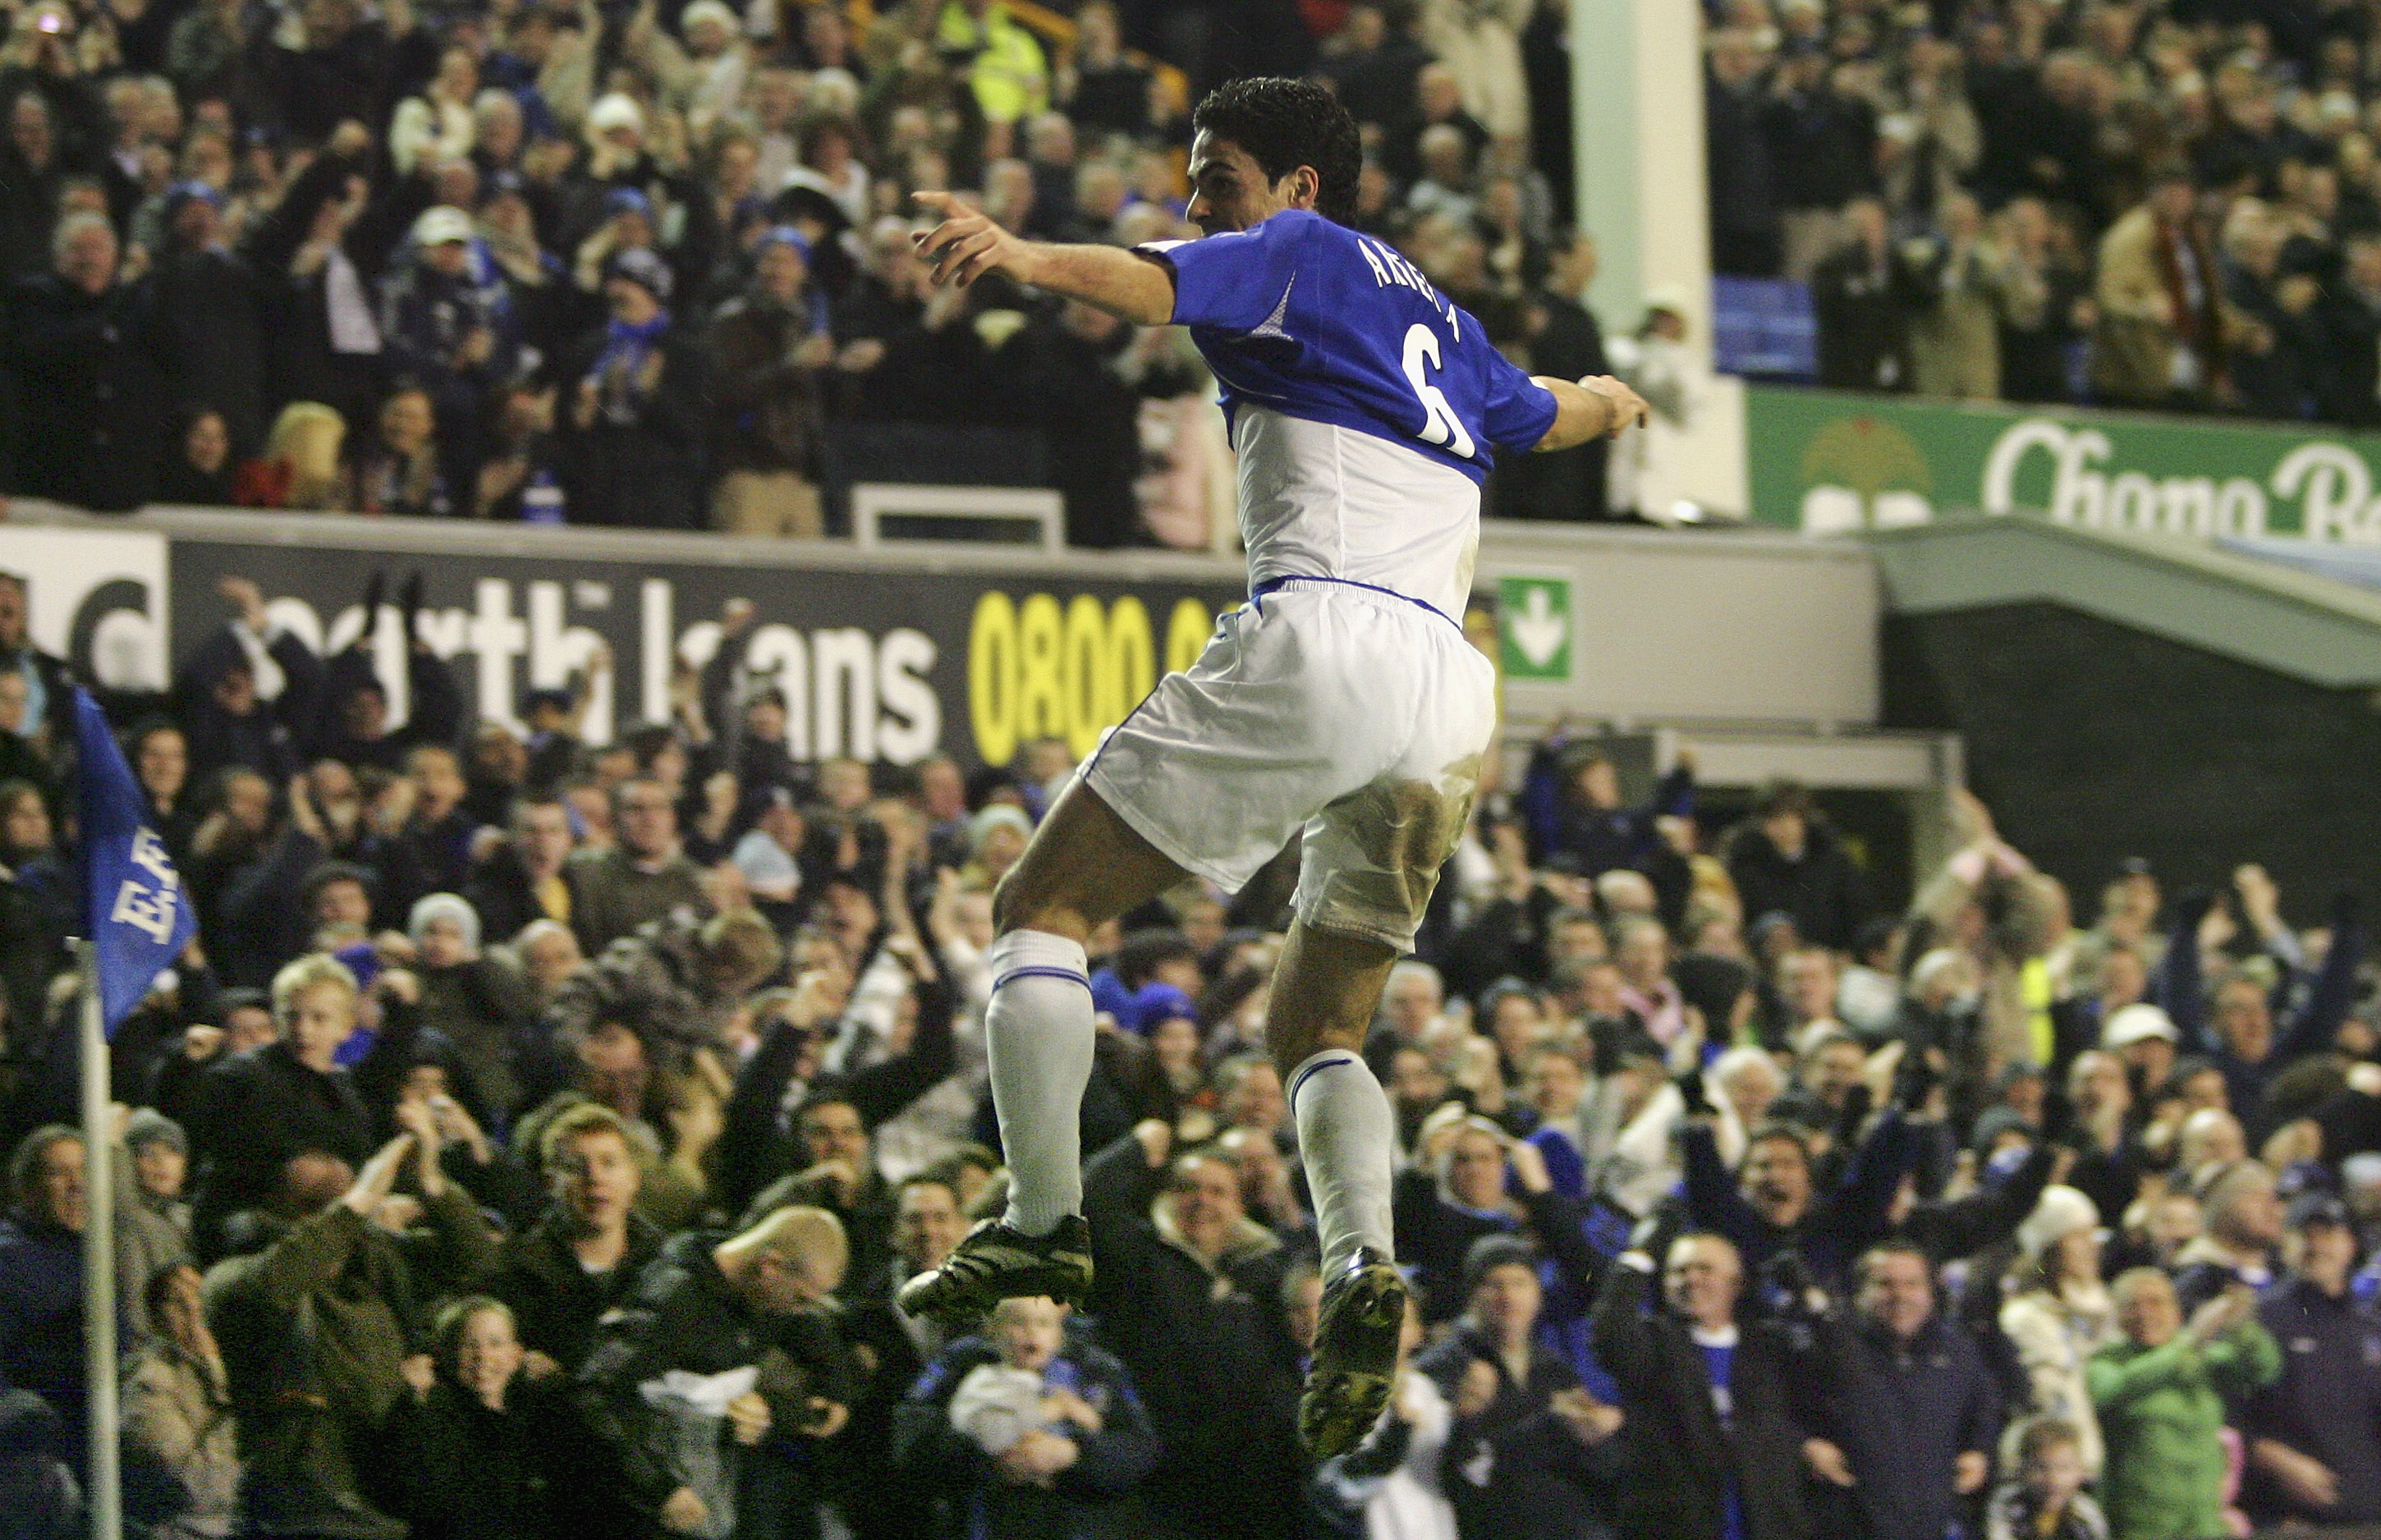 LIVERPOOL, UNITED KINGDOM - FEBRUARY 21:  Mikel Arteta of Everton celebrates scoring his team's first goal during the Barclays Premiership match between Everton and  Tottenham Hotspur at Goodison Park on February 21, 2007 in Liverpool, England.  (Photo by